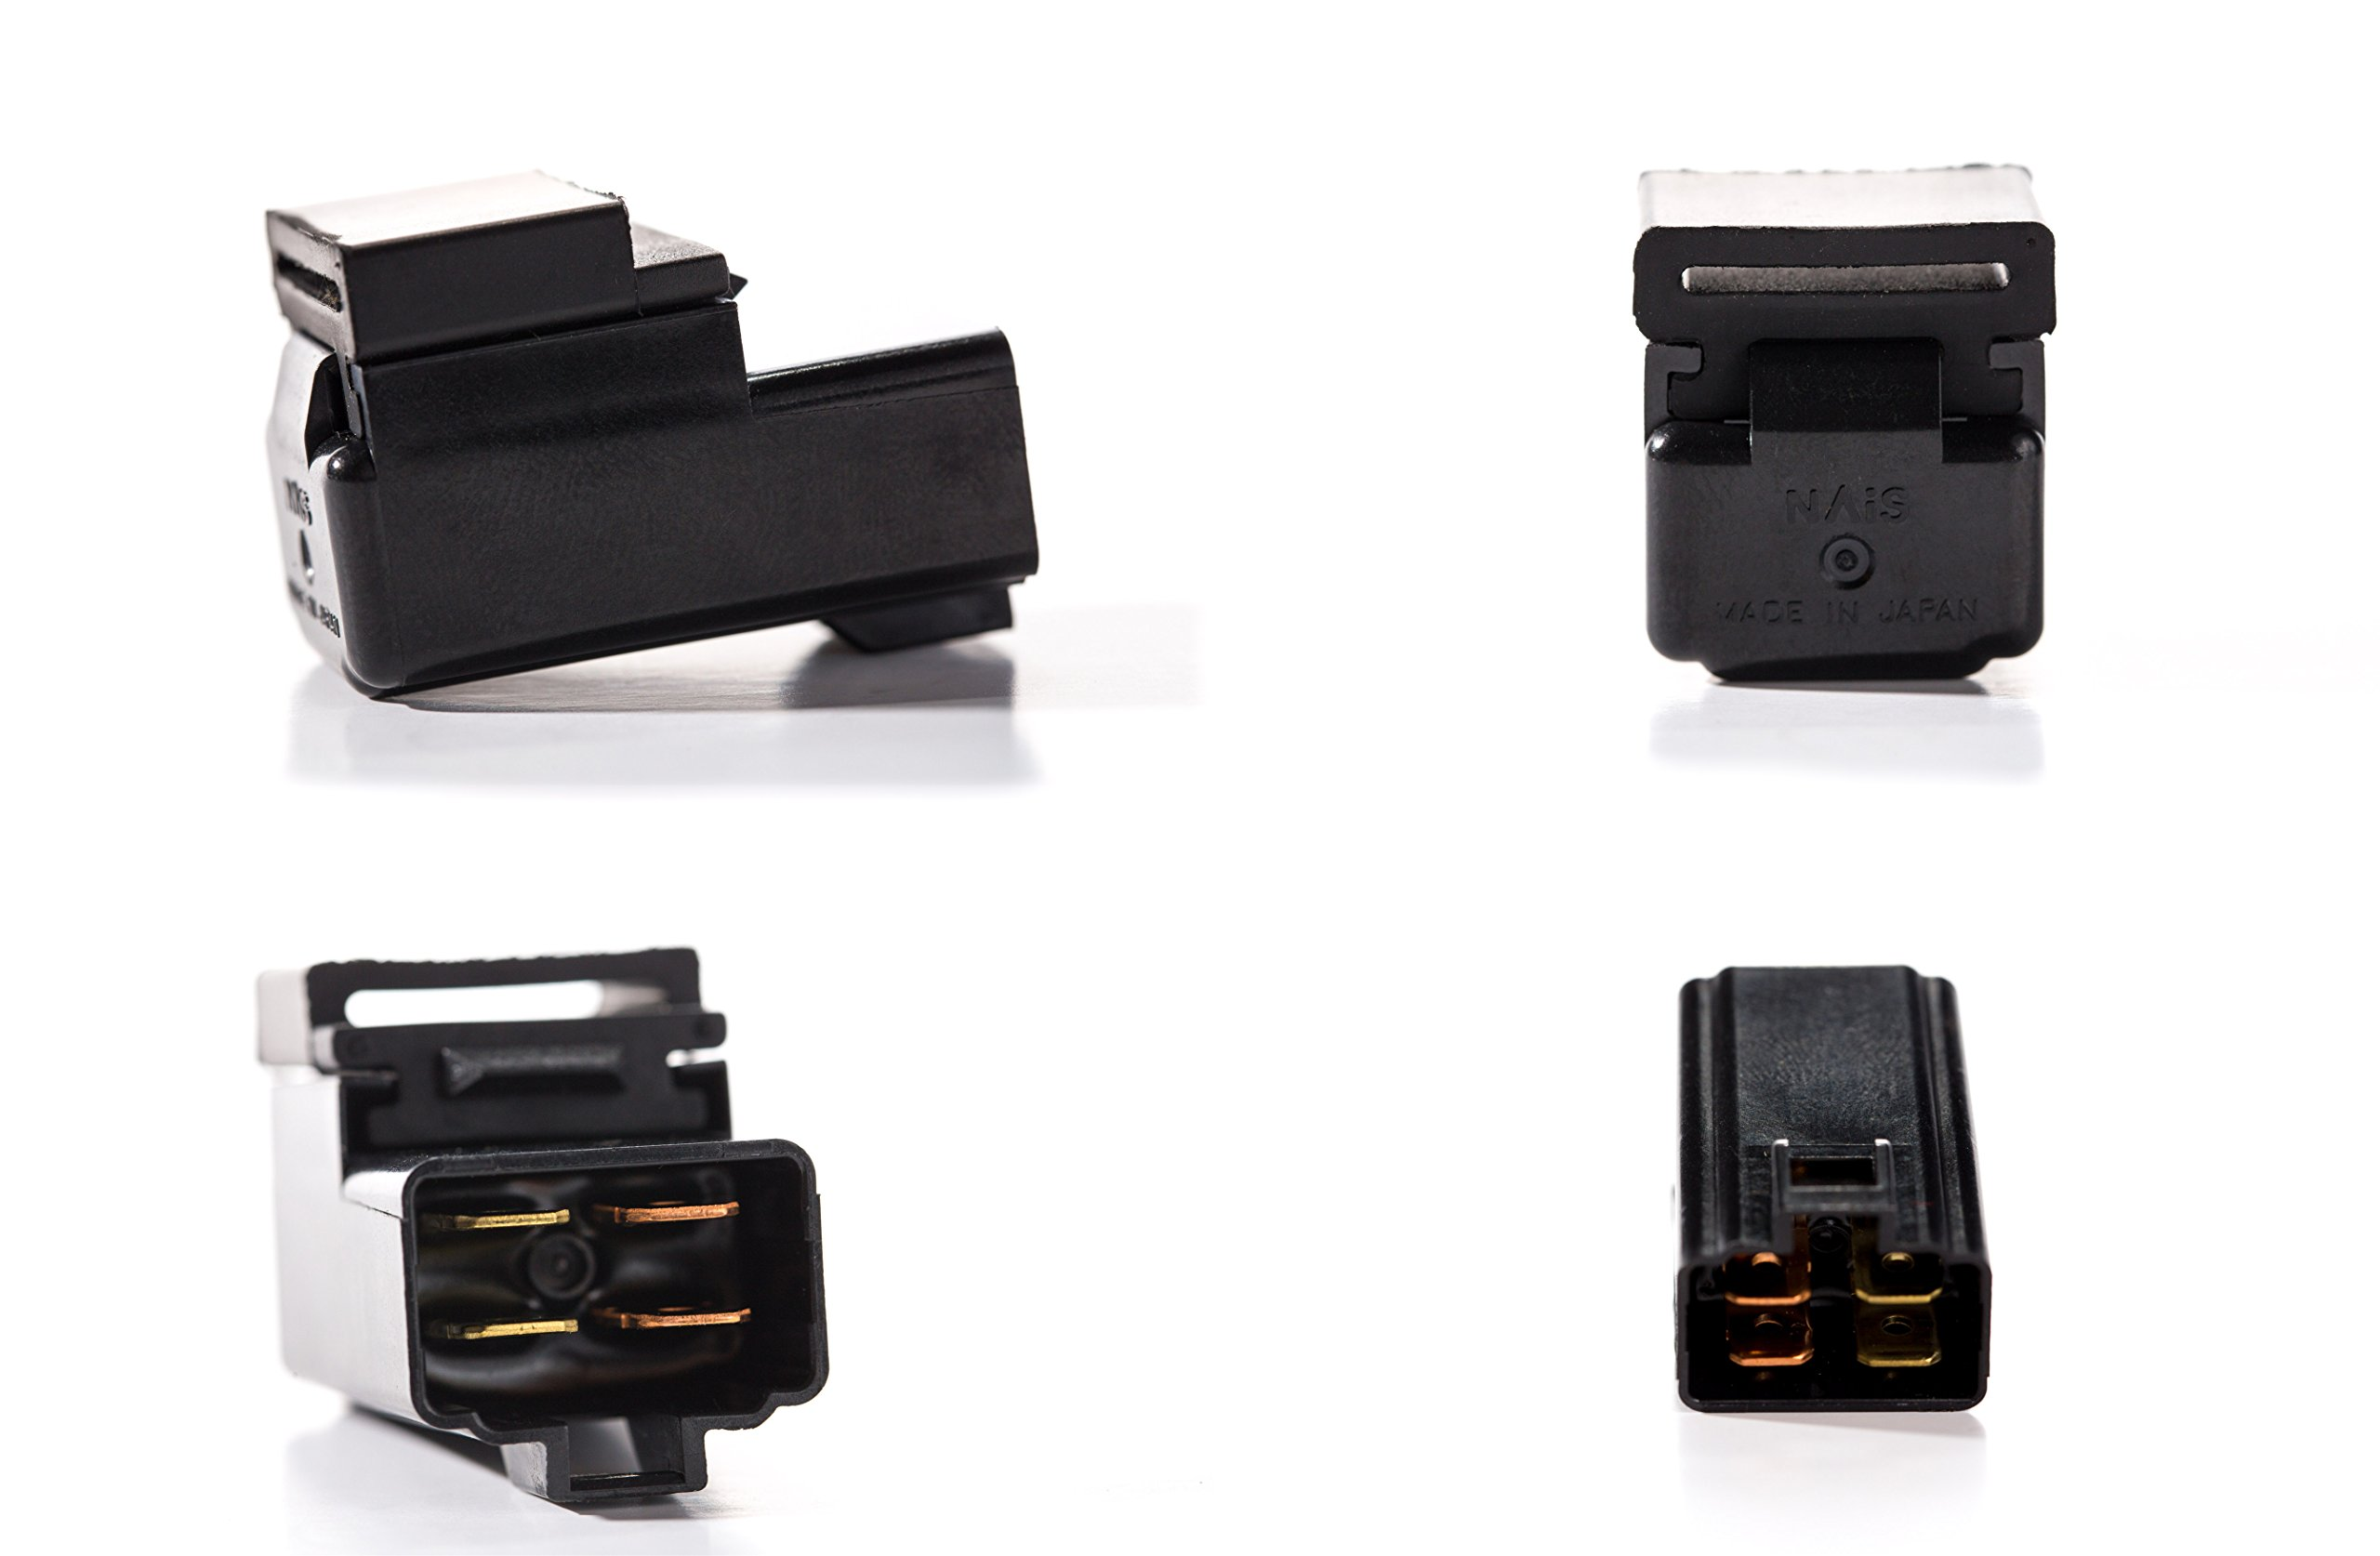 Direct Replacement Relay for Yamaha Part 29U-81950-93-00 - Made in Japan Sealed Four Terminal